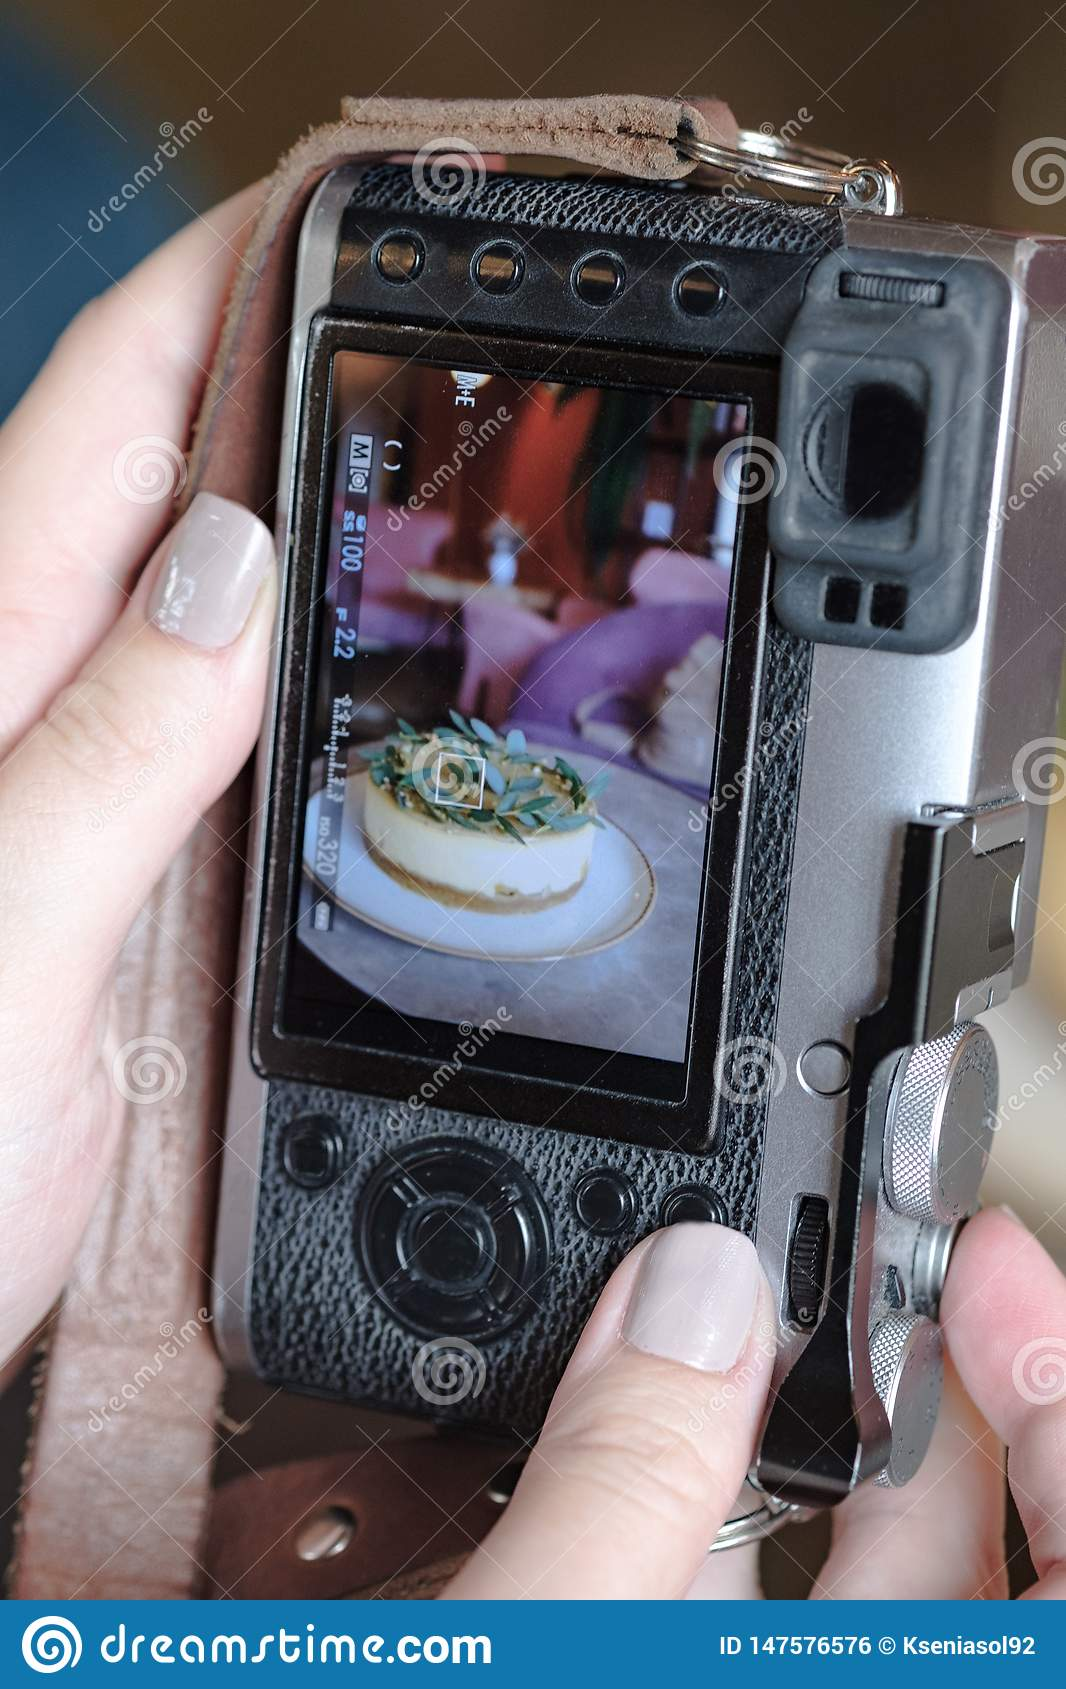 A woman takes a photograph of the cake using a mirrorless camera